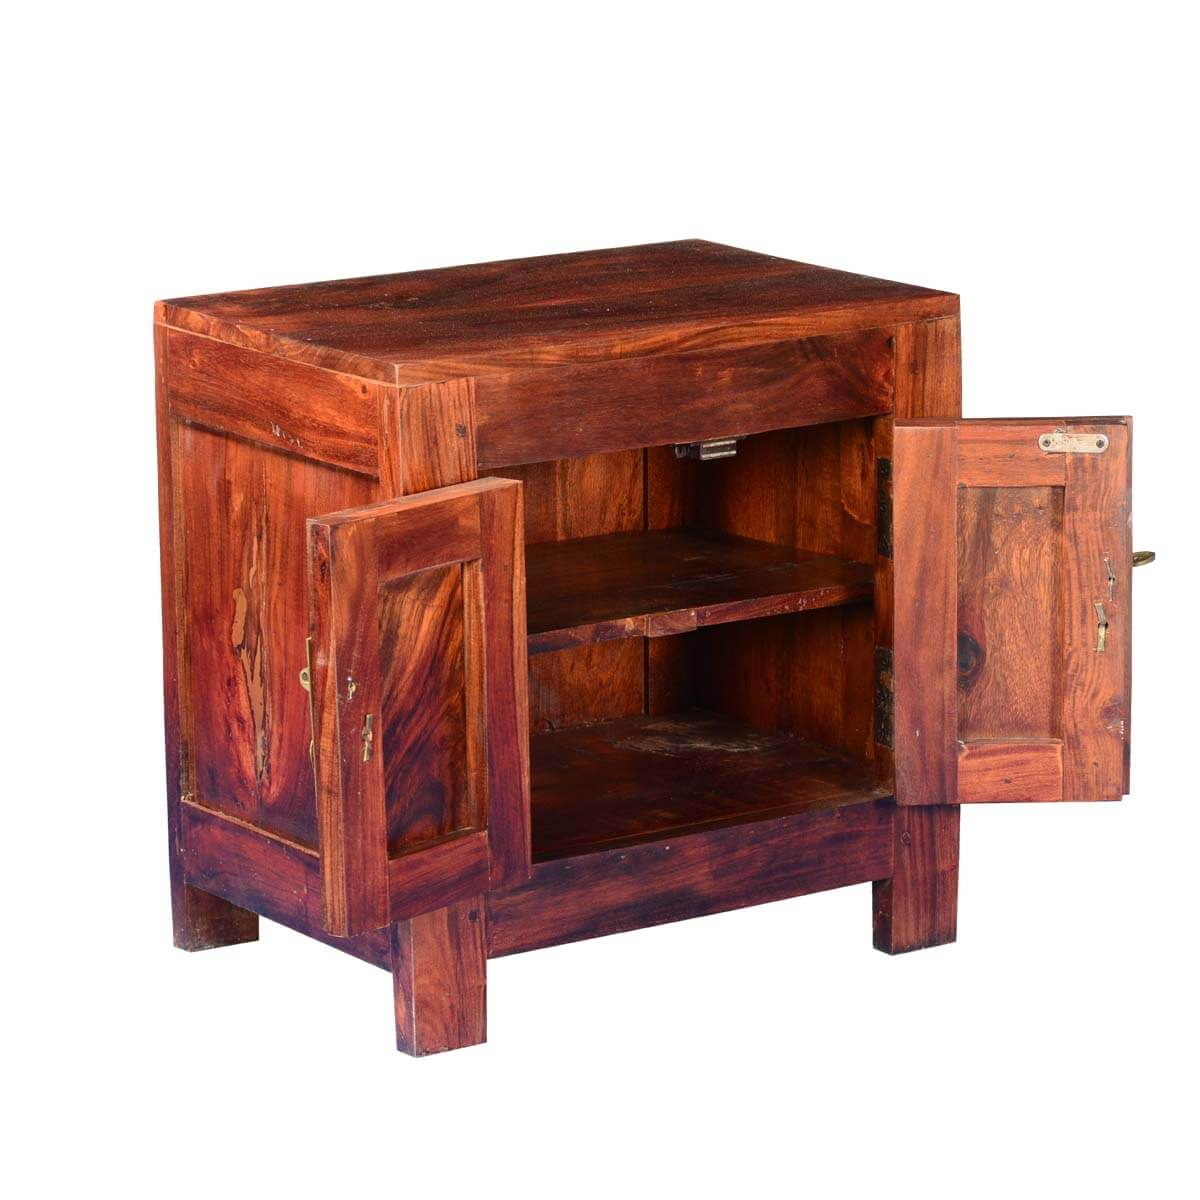 Solid Wood Coffee Tables With Storage Cabinets For Sale: Strawberry Moon Solid Wood & Acacia End Table Cabinet